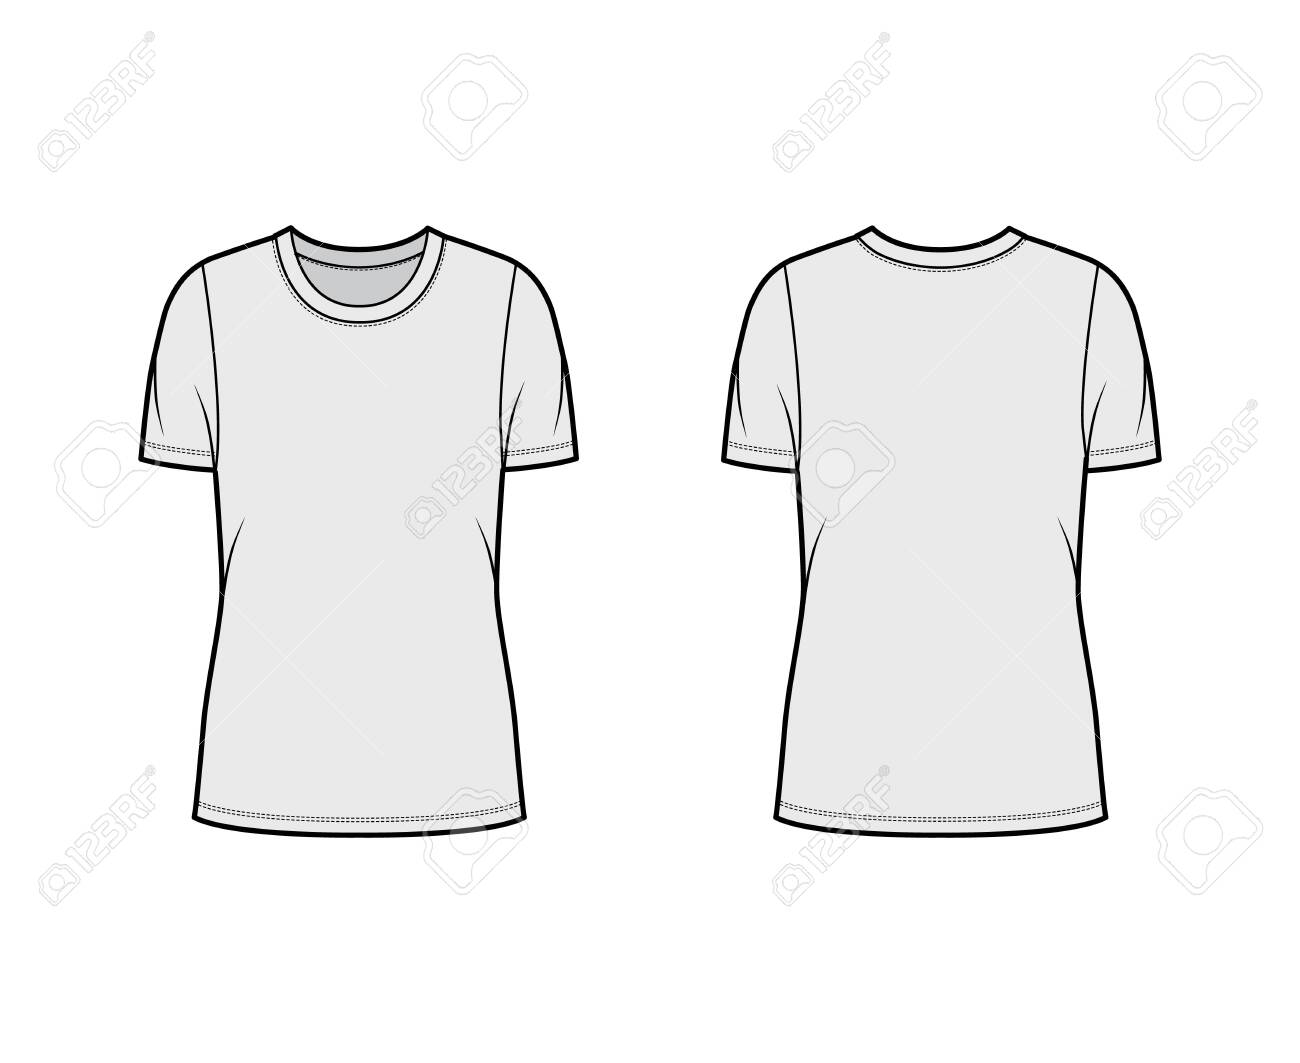 Crew neck jersey t-shirt technical fashion illustration with short sleeves, oversized body, tunic length. Flat sweater apparel template front back grey color. Women men unisex outfit top CAD mockup - 153408250